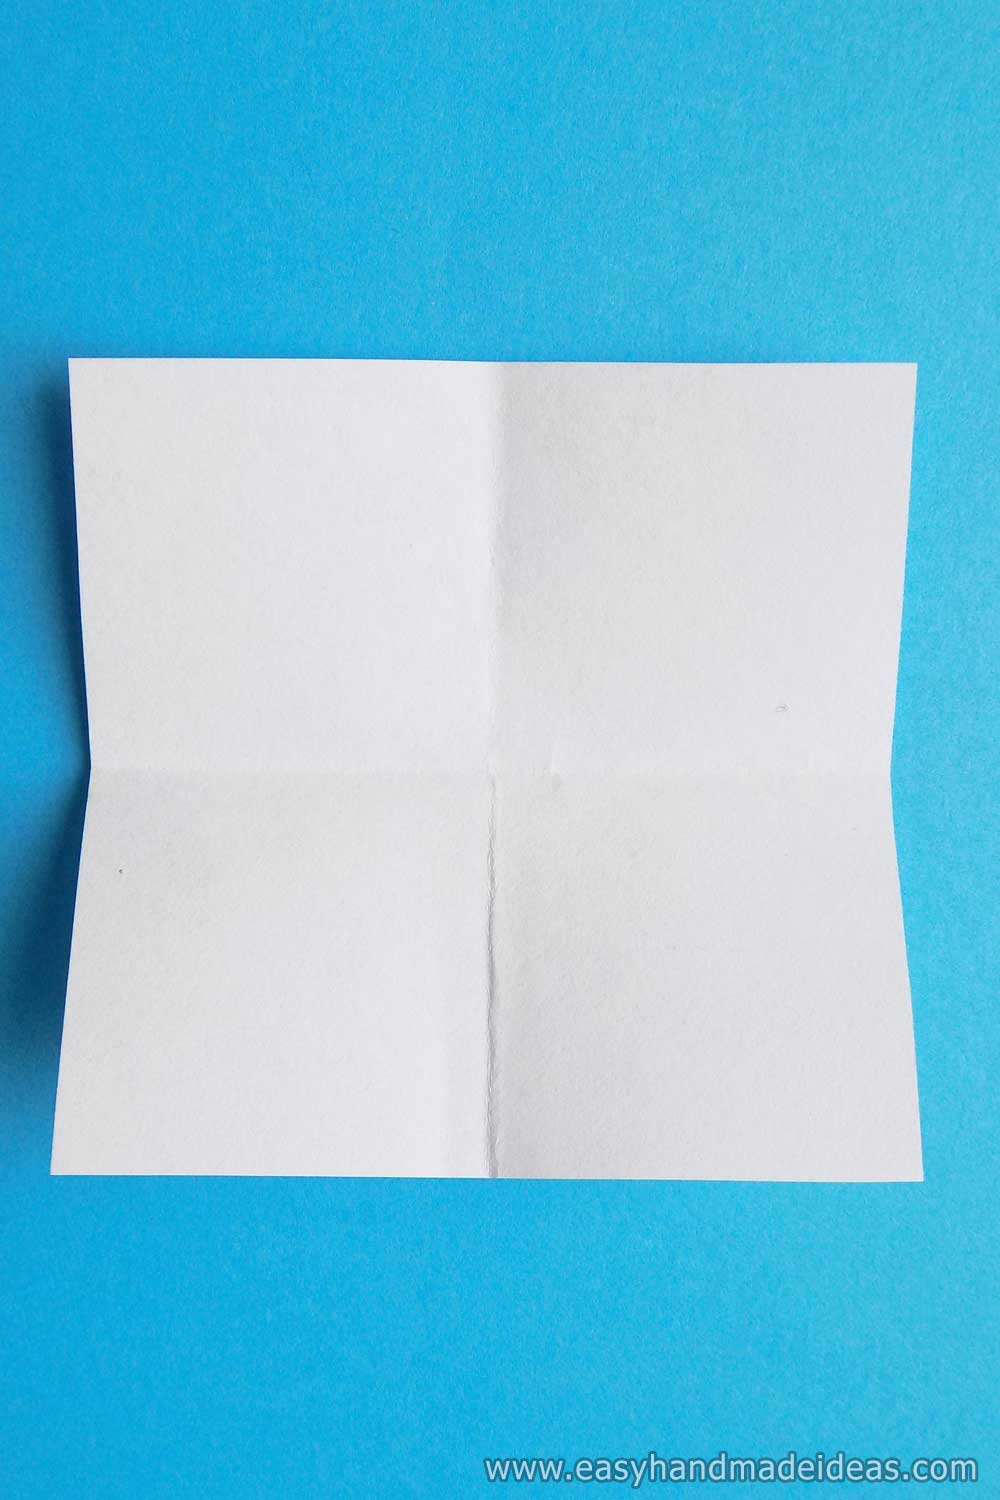 The Paper Square is Folded in Several Directions